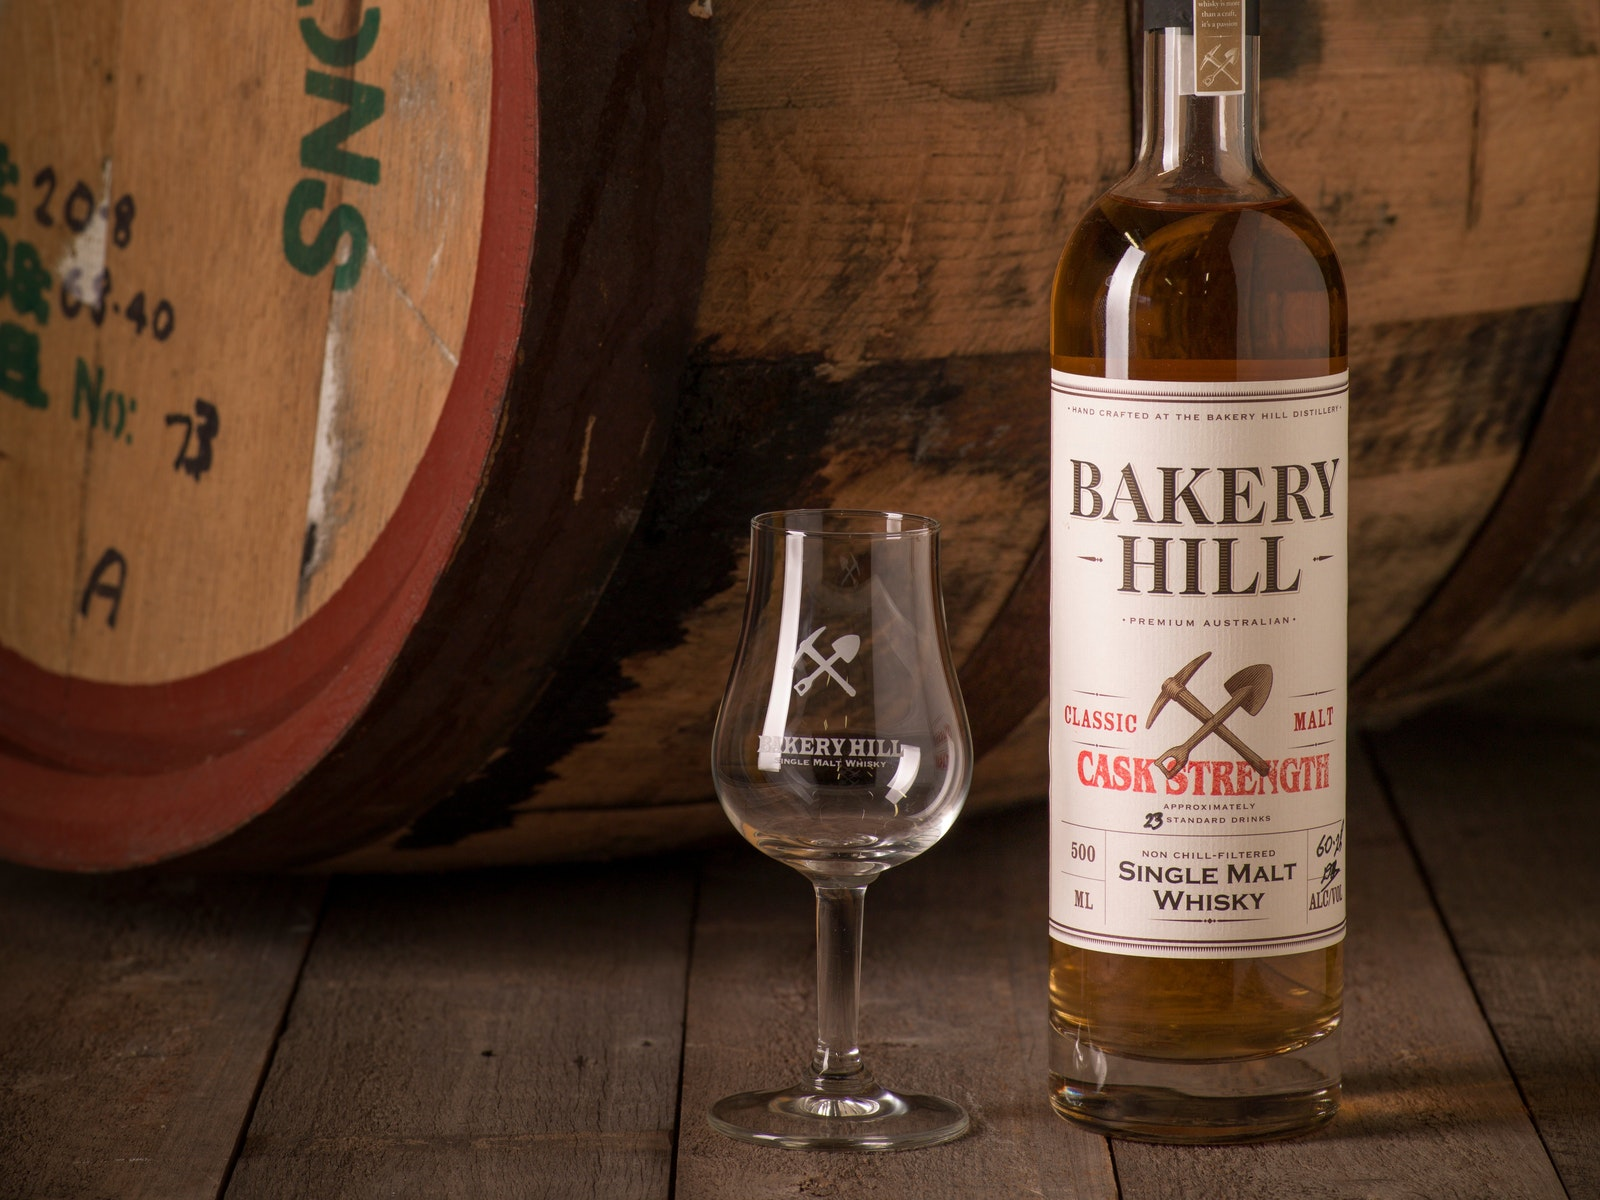 Bakery Hill Whisky